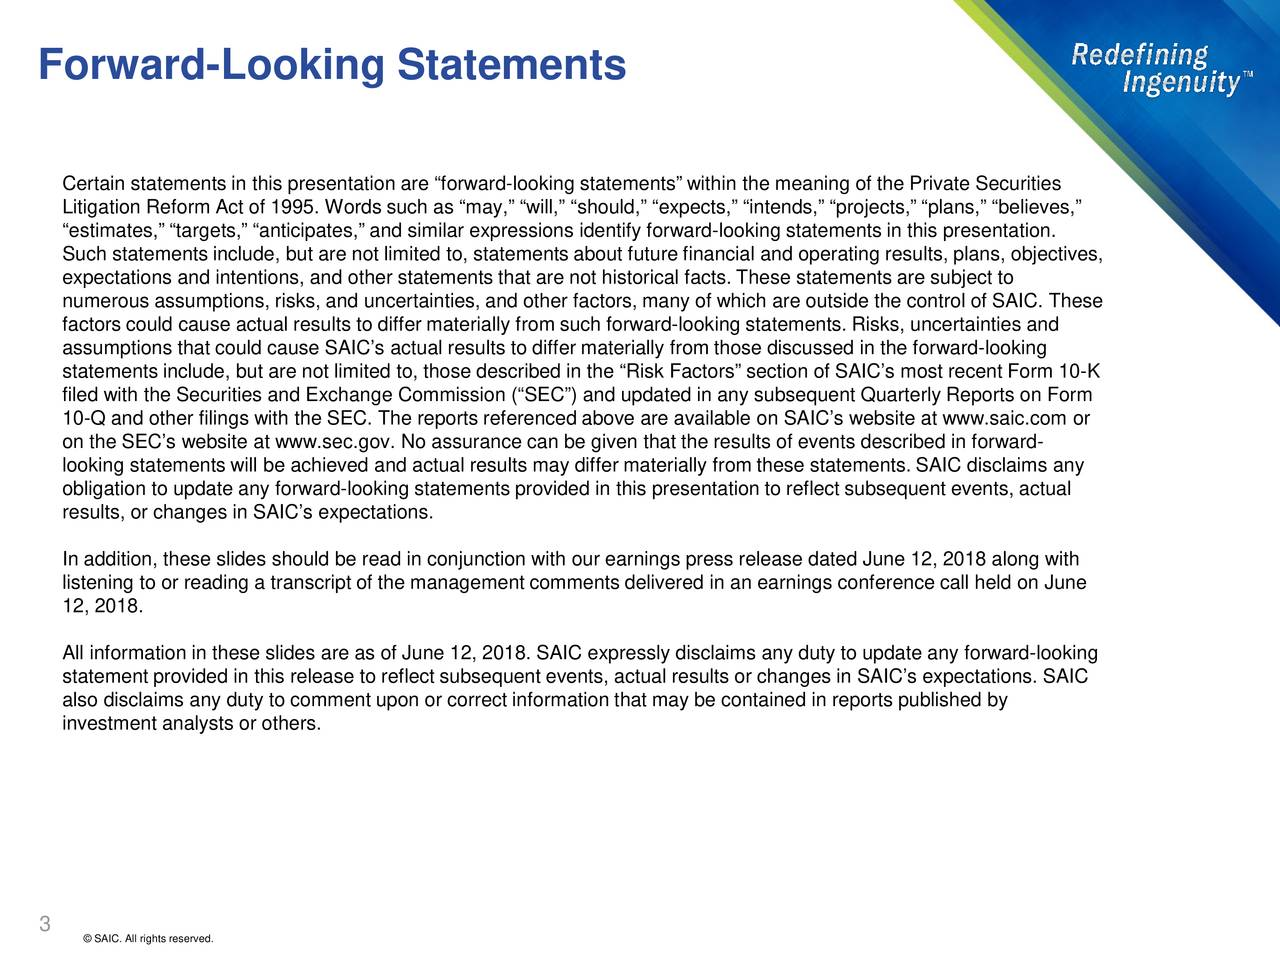 "Certain statements in this presentation are ""forward-looking statements"" within the meaning of the Private Securities Litigation Reform Act of 1995. Words such as ""may,"" ""will,"" ""should,"" ""expects,"" ""intends,"" ""projects,"" ""plans,"" ""believes,"" ""estimates,"" ""targets,"" ""anticipates,"" and similar expressions identify forwardl-ooking statements in this presentation. Such statements include, but are not limited to, statements about future financial and operating results, plans, objectives, expectations and intentions, and other statements that are not historical facts. These statements are subject to numerous assumptions, risks, and uncertainties, and other factors, many of which are outside the control of SAIC. These factors could cause actual results to differ materially from such forwardl-ooking statements. Risks, uncertainties and assumptions that could cause SAIC's actual results to differ materially from those discussed in the forwardl-ooking statements include, but are not limited to, those described in the ""Risk Factors"" section of SAIC's most recent Form 1-K filed with the Securities and Exchange Commission (""SEC"") and updated in any subsequent Quarterly Reports on Form 10-Q and other filings with the SEC. The reports referenced above are available on SAIC's website at www.saic.com or on the SEC's website at www.sec.gov. No assurance can be given that the results of events described in forward- looking statements will be achieved and actual results may differ materially from these statements. SAIC disclaims any obligation to update any forward-looking statements provided in this presentation to reflect subsequent events, actual results, or changes in SAIC's expectations. In addition, these slides should be read in conjunction with our earnings press release datedJune 12, 2018 along with listening to or reading a transcript of the management comments delivered in an earnings conference call held onJune 12, 2018. All information in these slides are as ofJune 12, 2018. SAIC expressly disclaims any duty to update any forward-looking statement provided in this release to reflect subsequent events, actual results or changes in SAIC's expectations. SAIC also disclaims any duty to comment upon or correct information that may be contained in reports published by investment analysts or others. 3 © SAIC. All rights reserved."